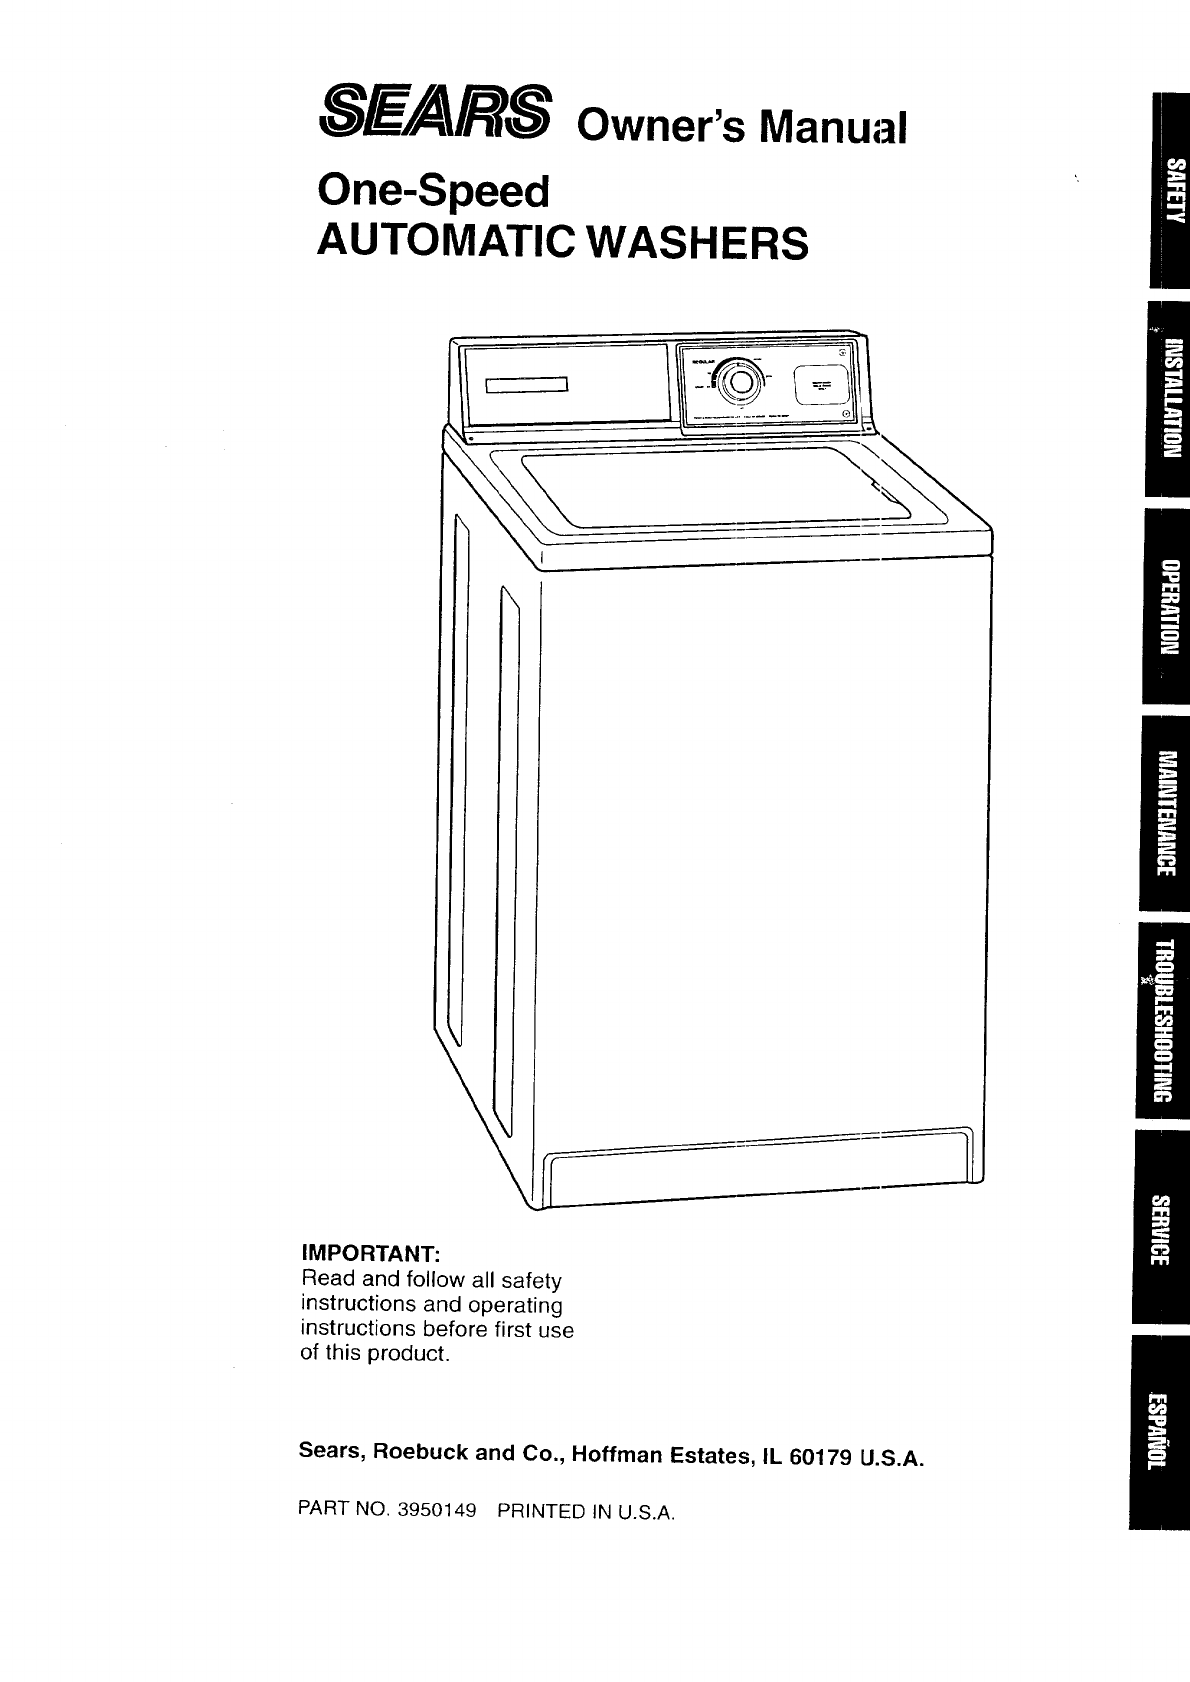 Kenmore 11016101690 User Manual AUTOMATIC WASHER Manuals